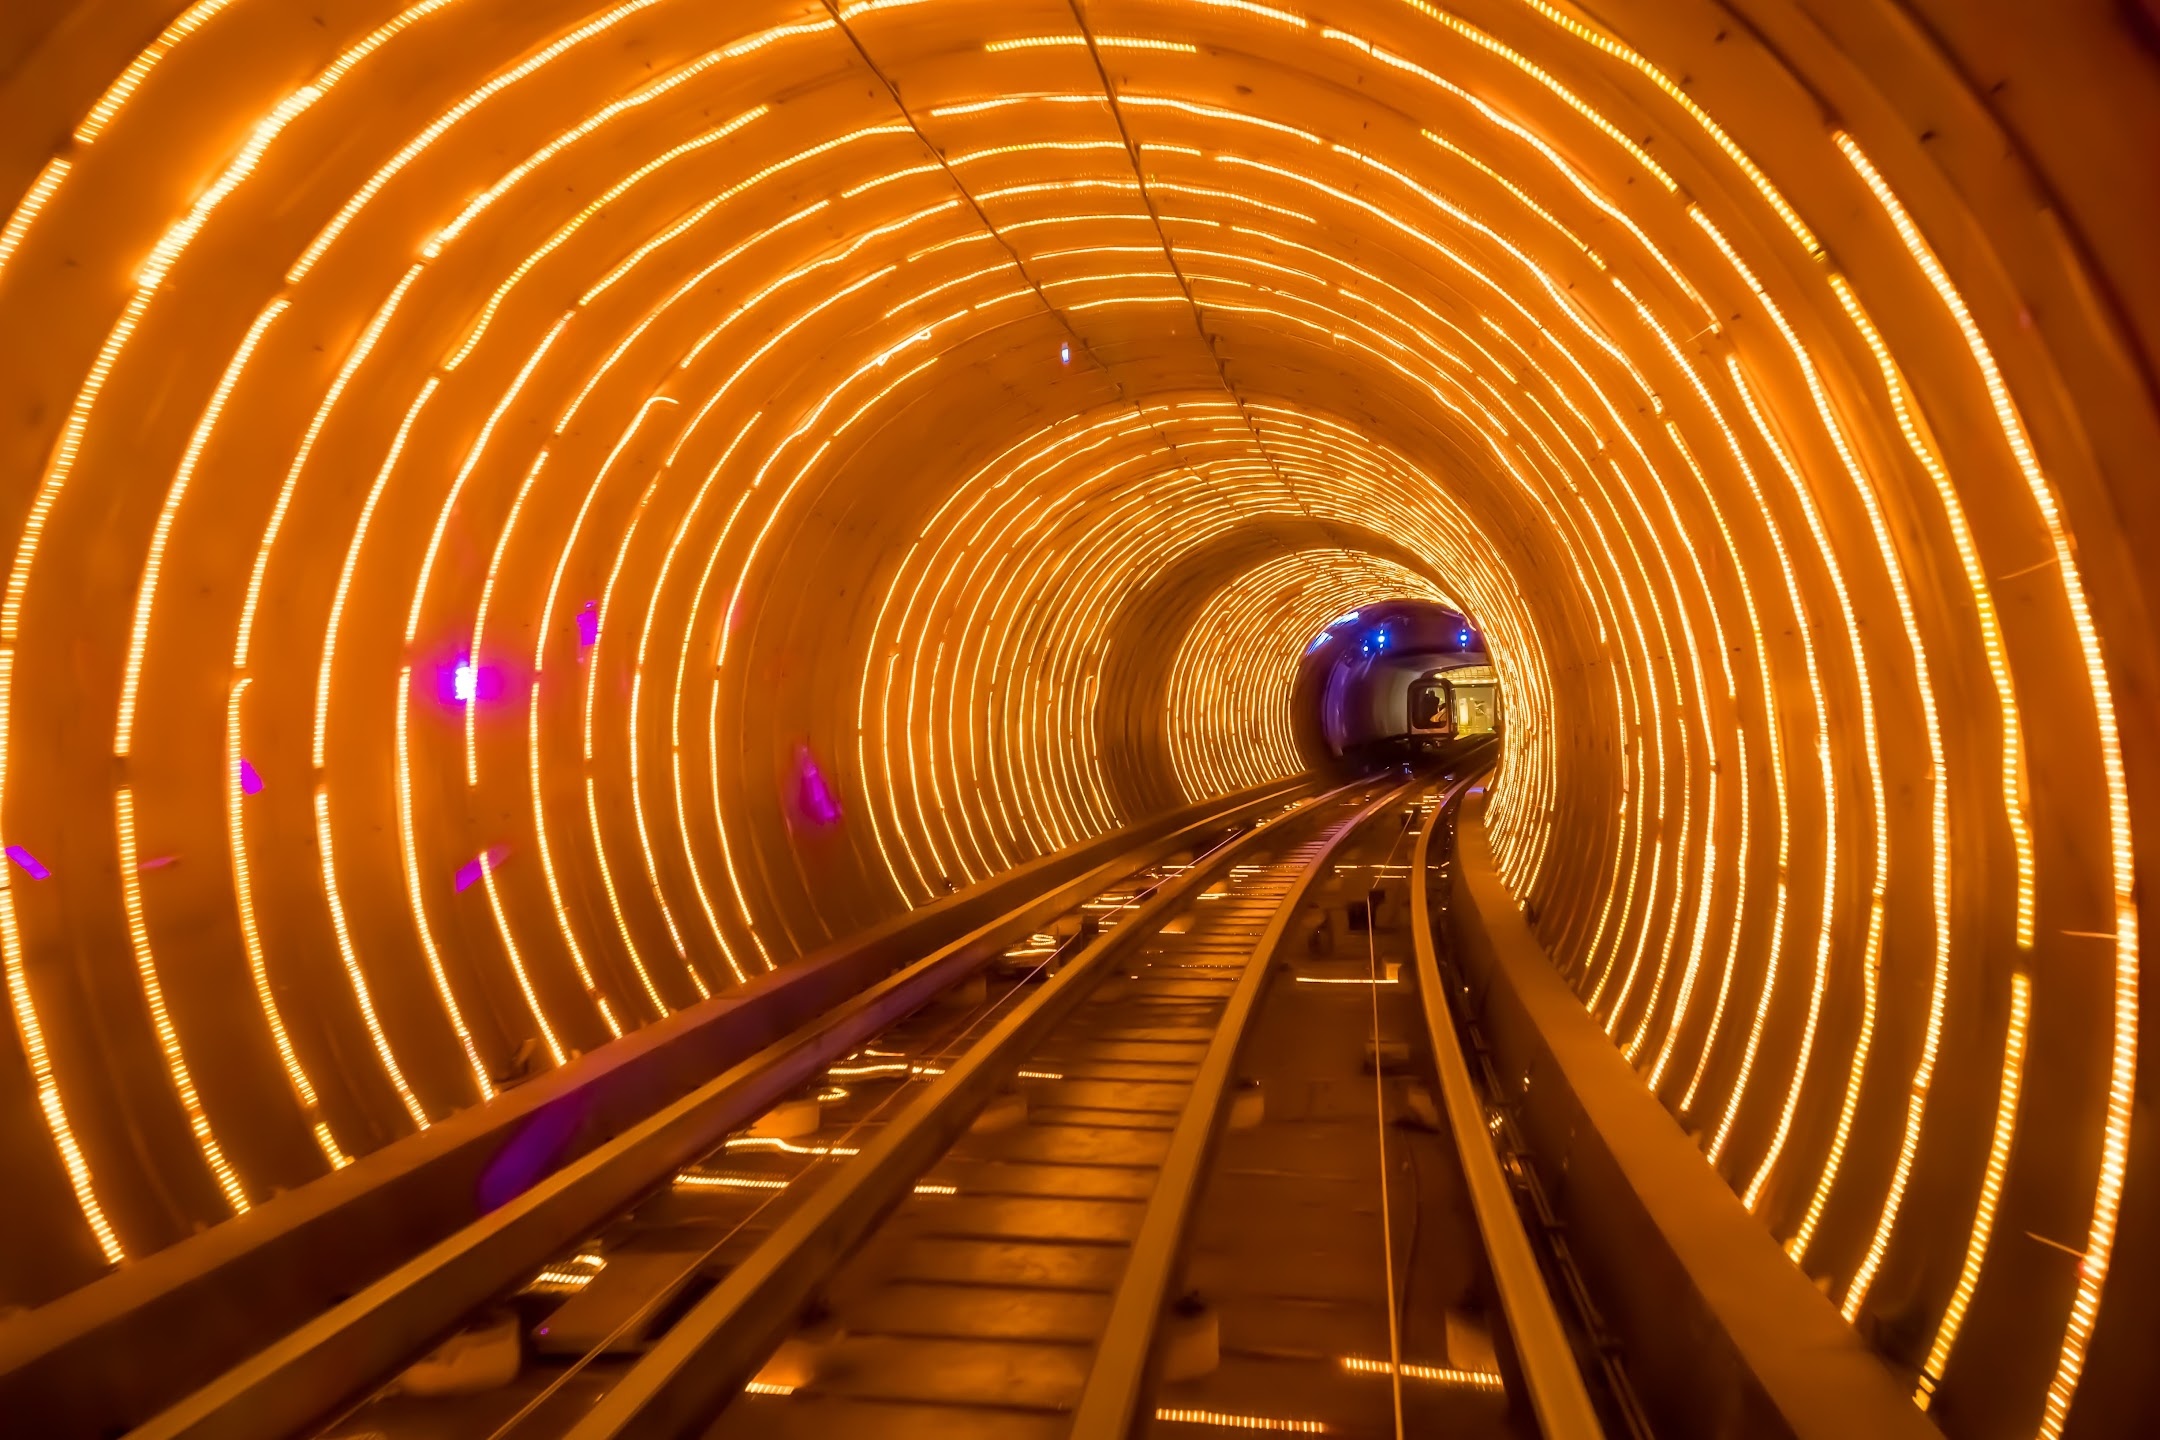 Shanghai Bund Sightseeing Tunnel1